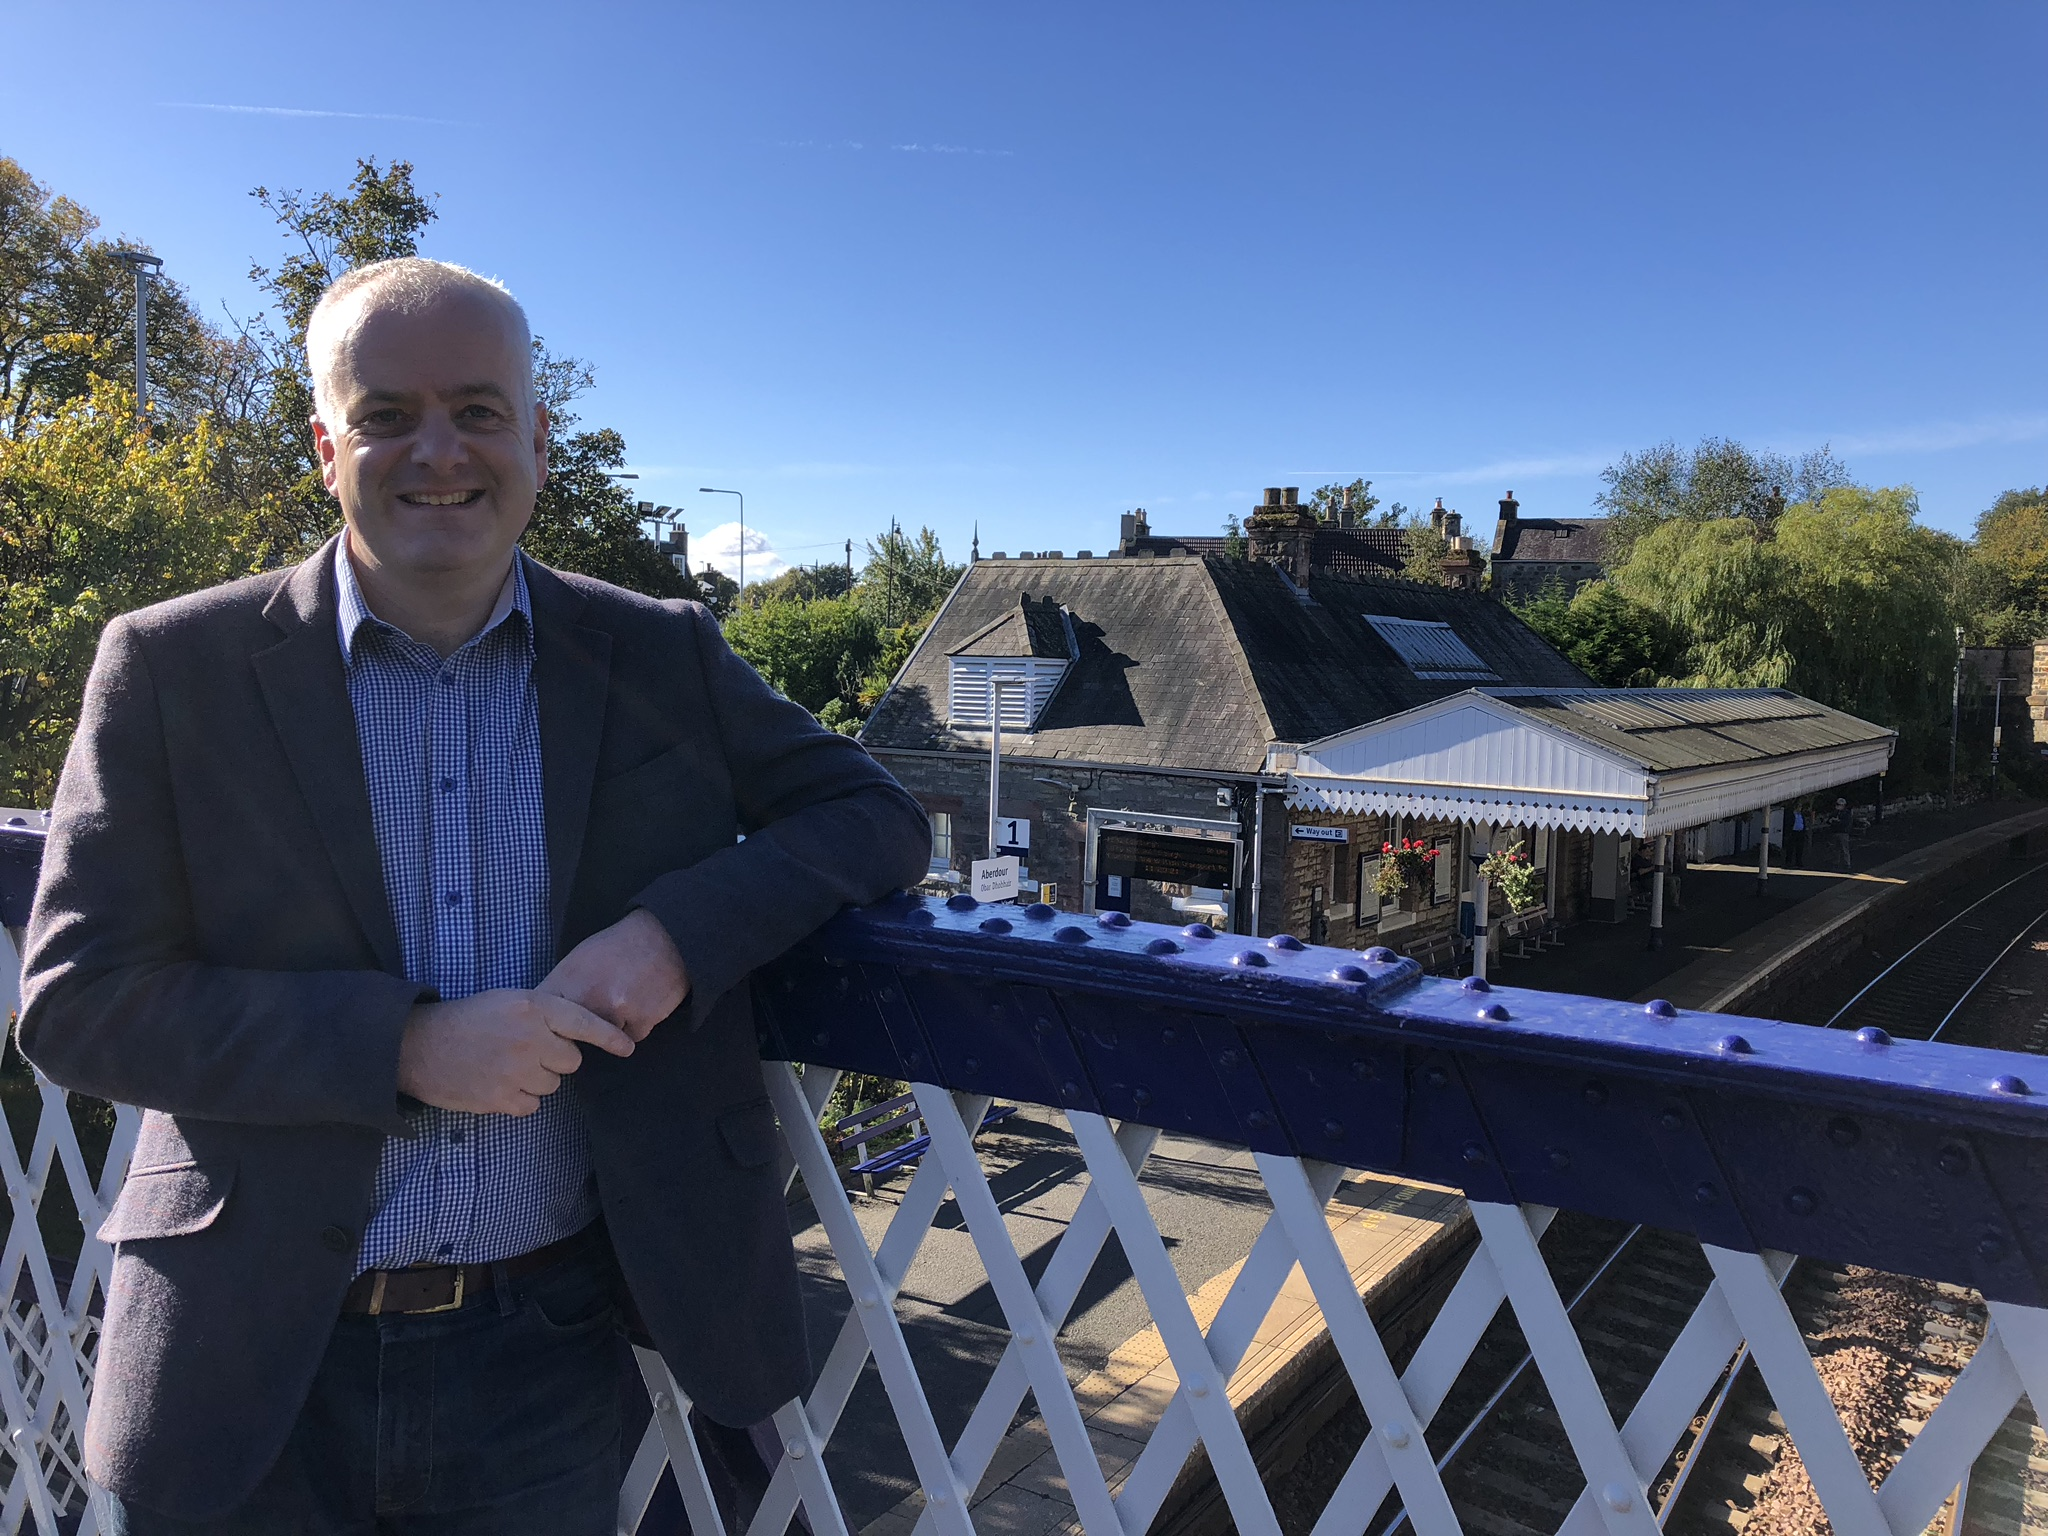 Mark Ruskell at Aberdour station